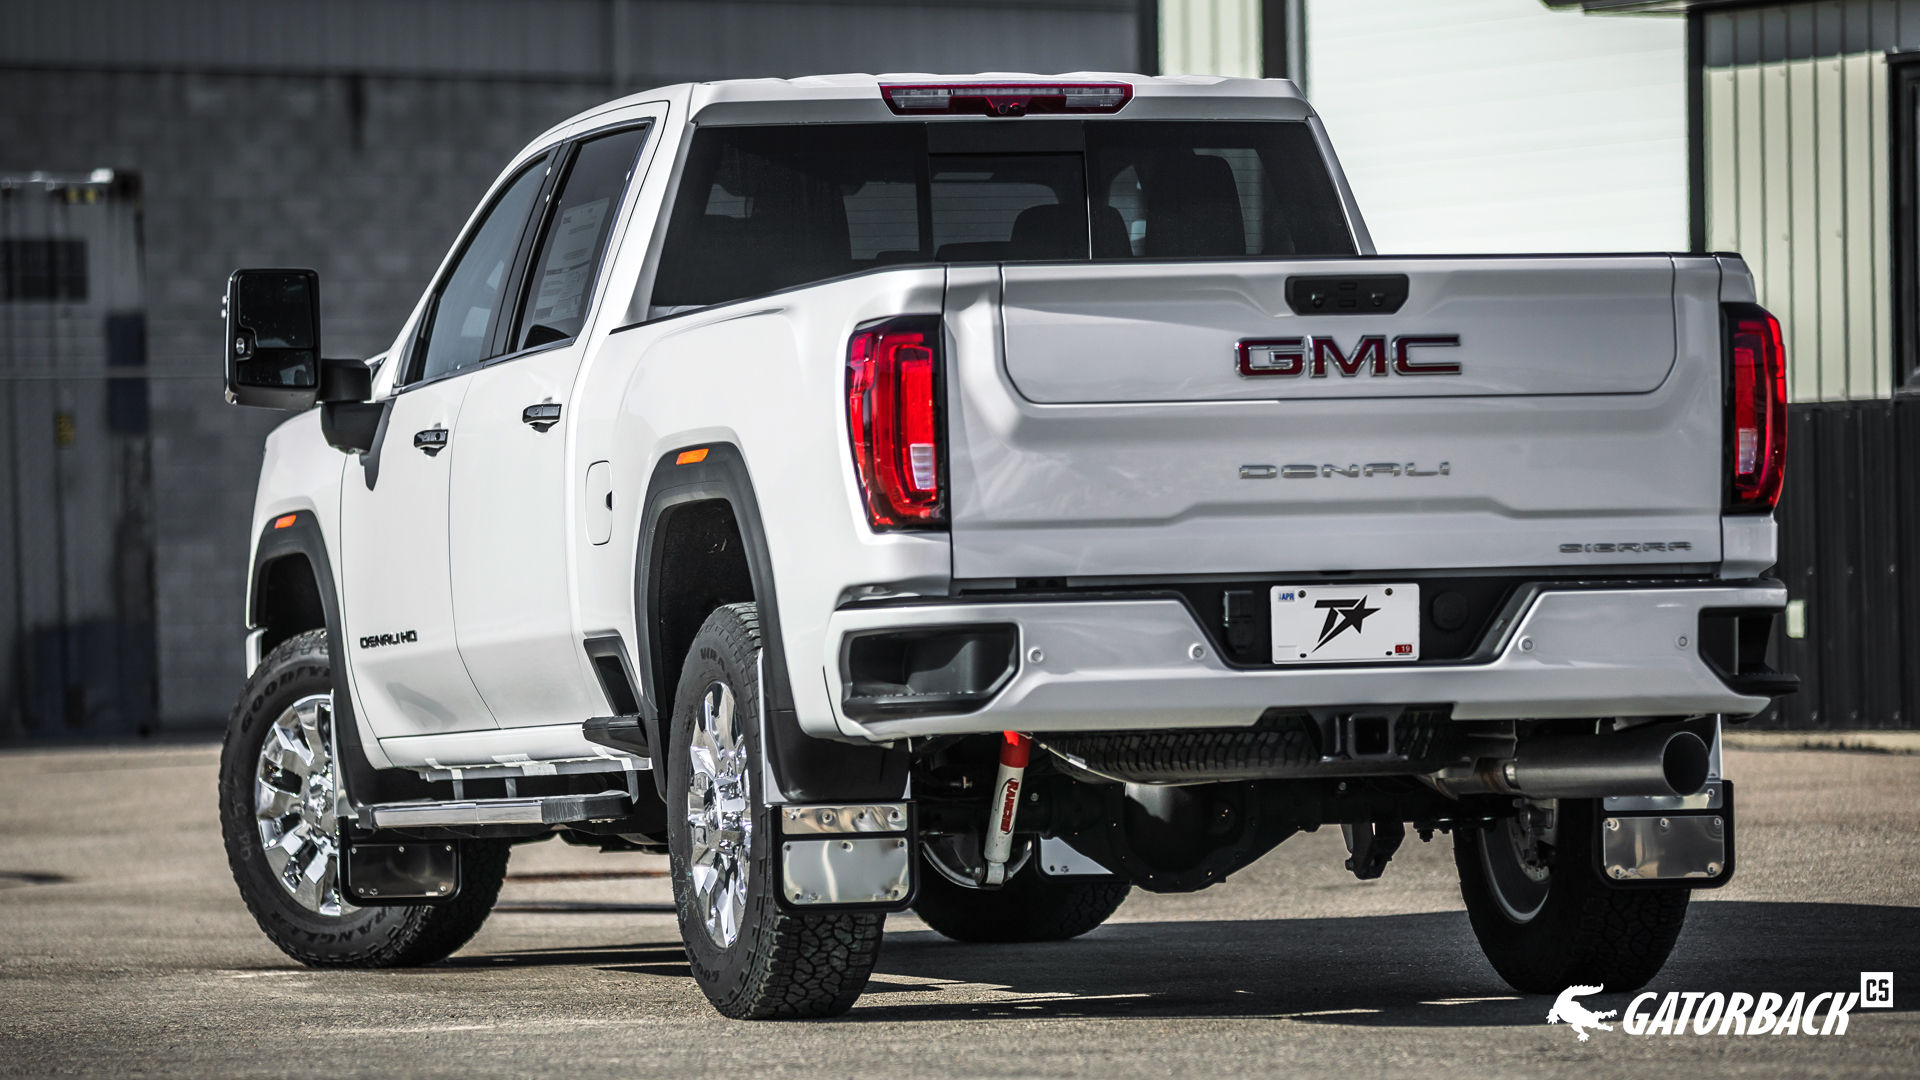 2020 GMC Sierra HD Gatorback CS Mud Flaps